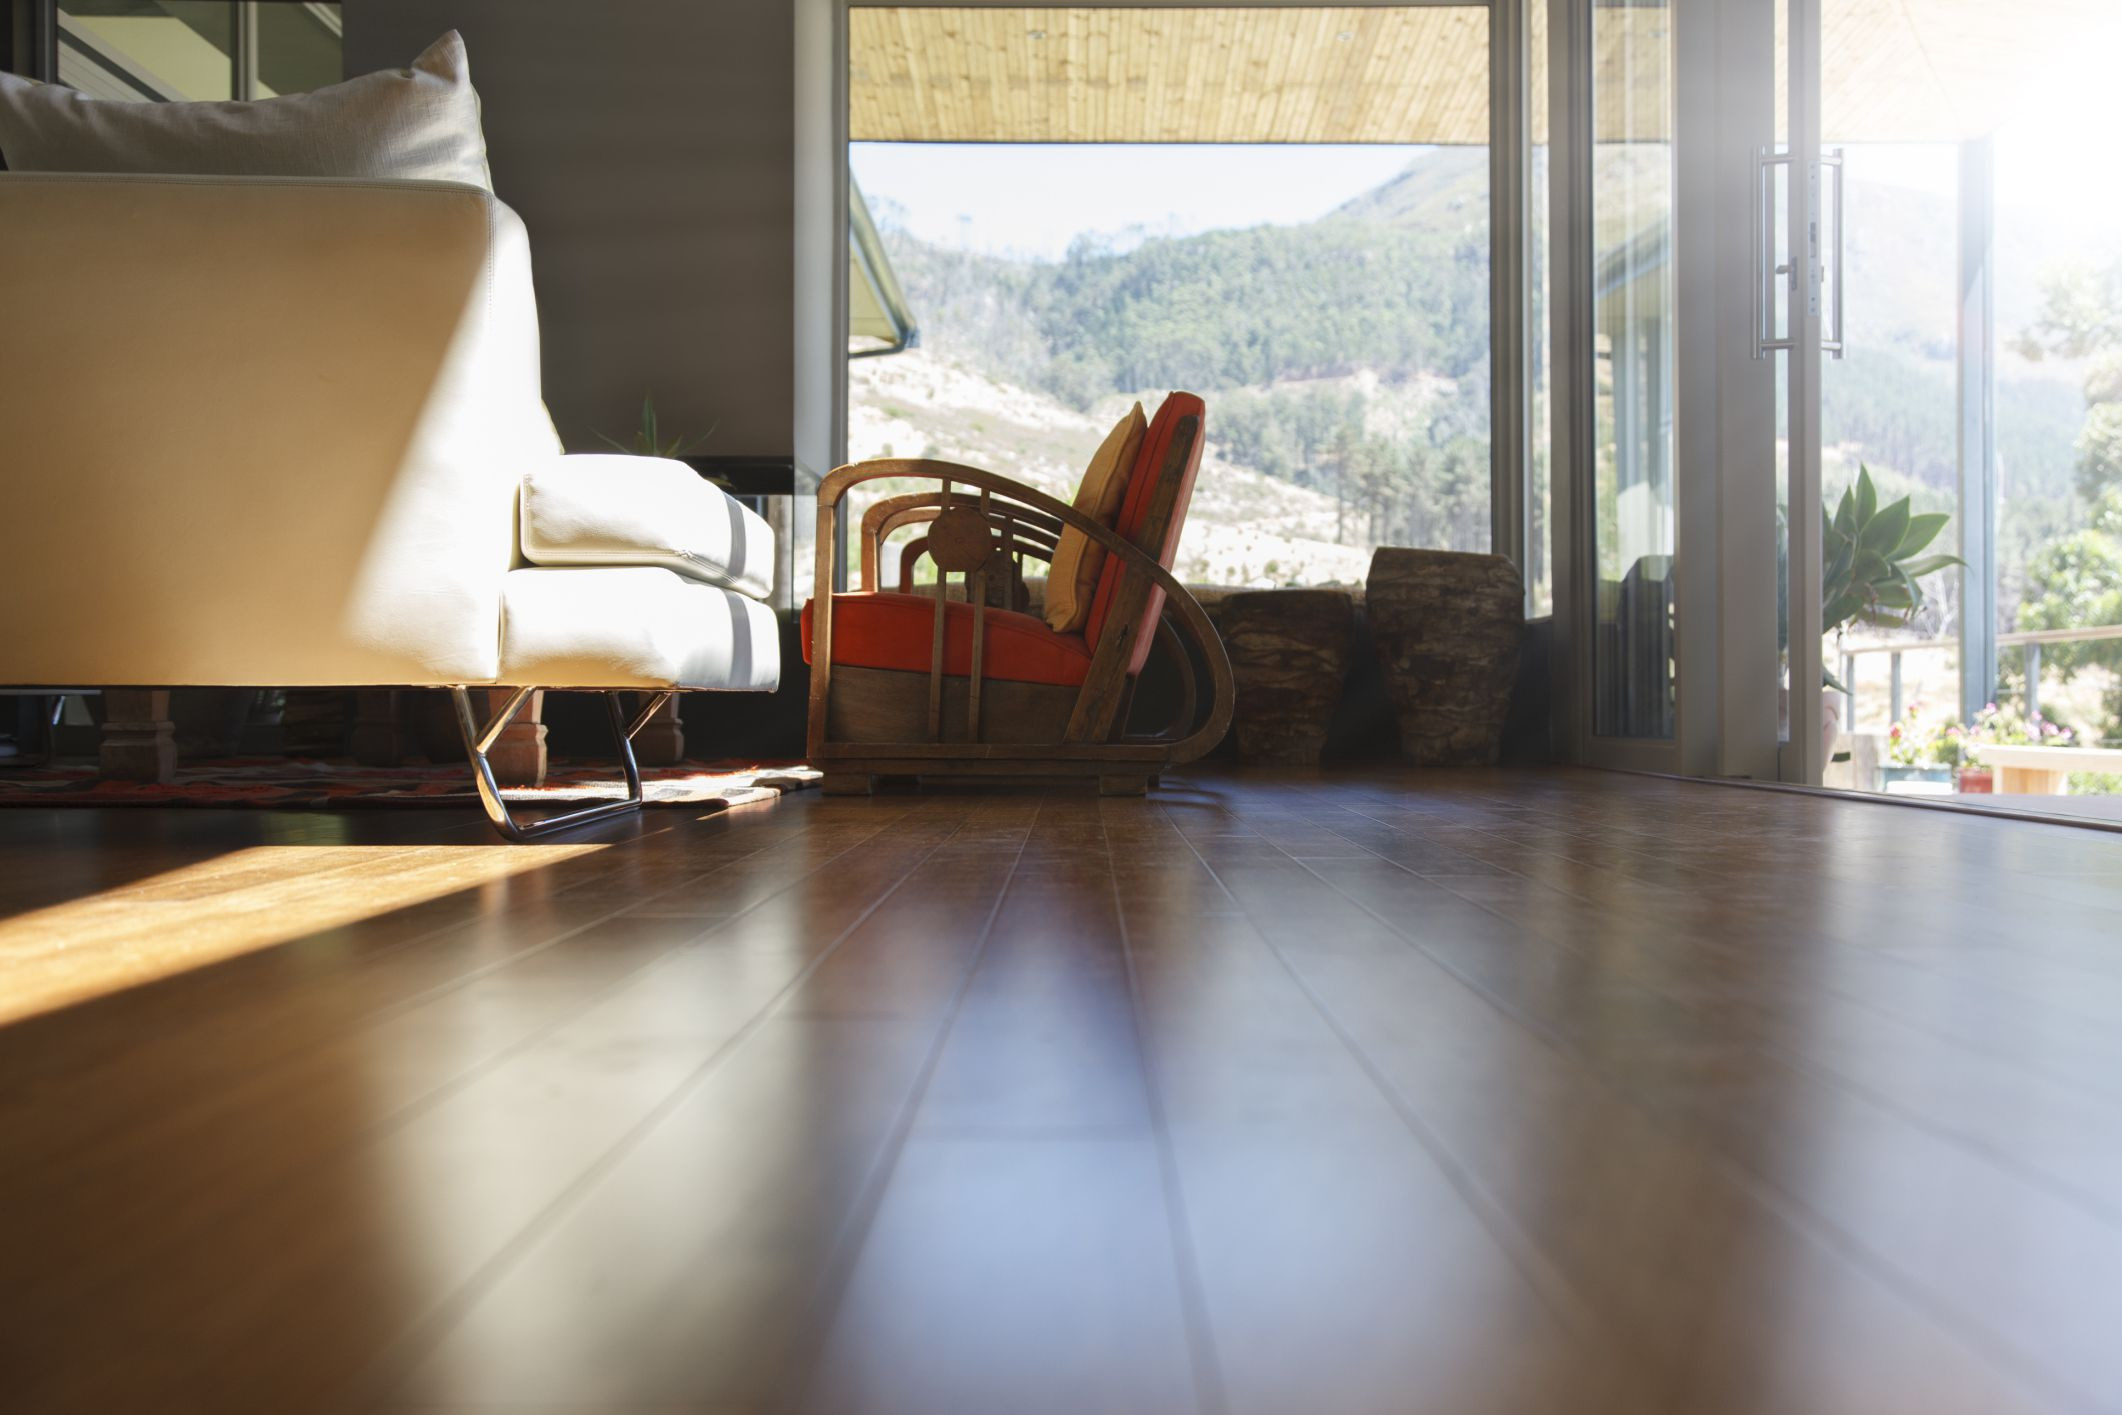 how to install red oak hardwood flooring of pros and cons of bellawood flooring from lumber liquidators with exotic hardwood flooring 525439899 56a49d3a3df78cf77283453d